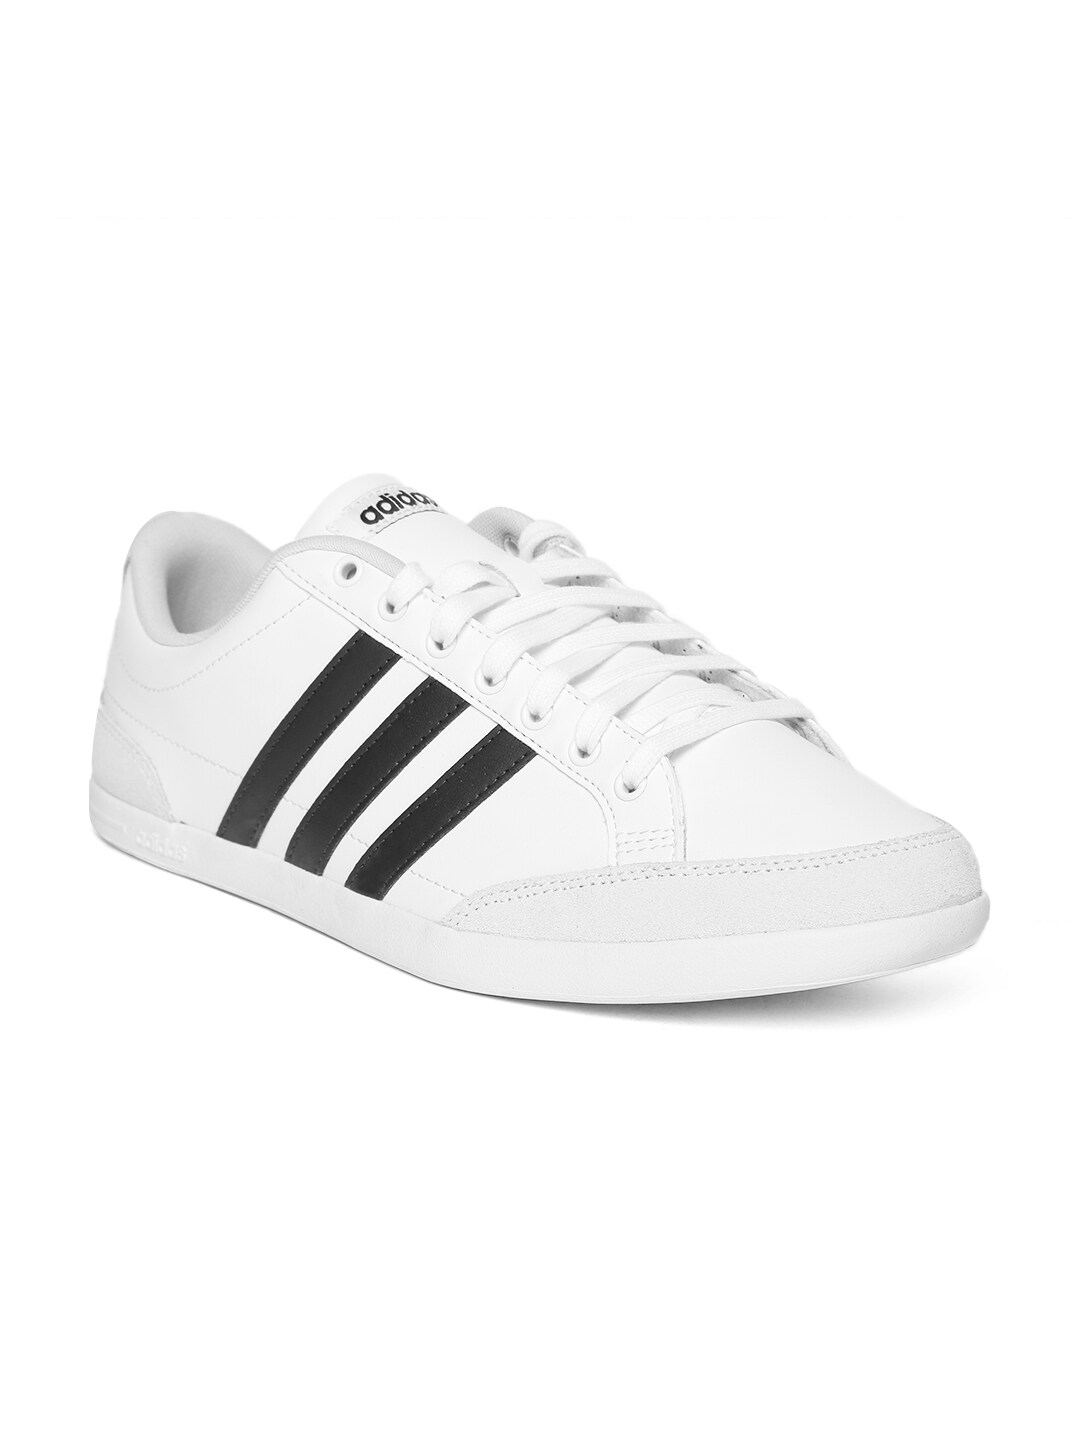 83eabc3ab3c3 Adidas White Shoes - Buy Adidas White Shoes Online in India